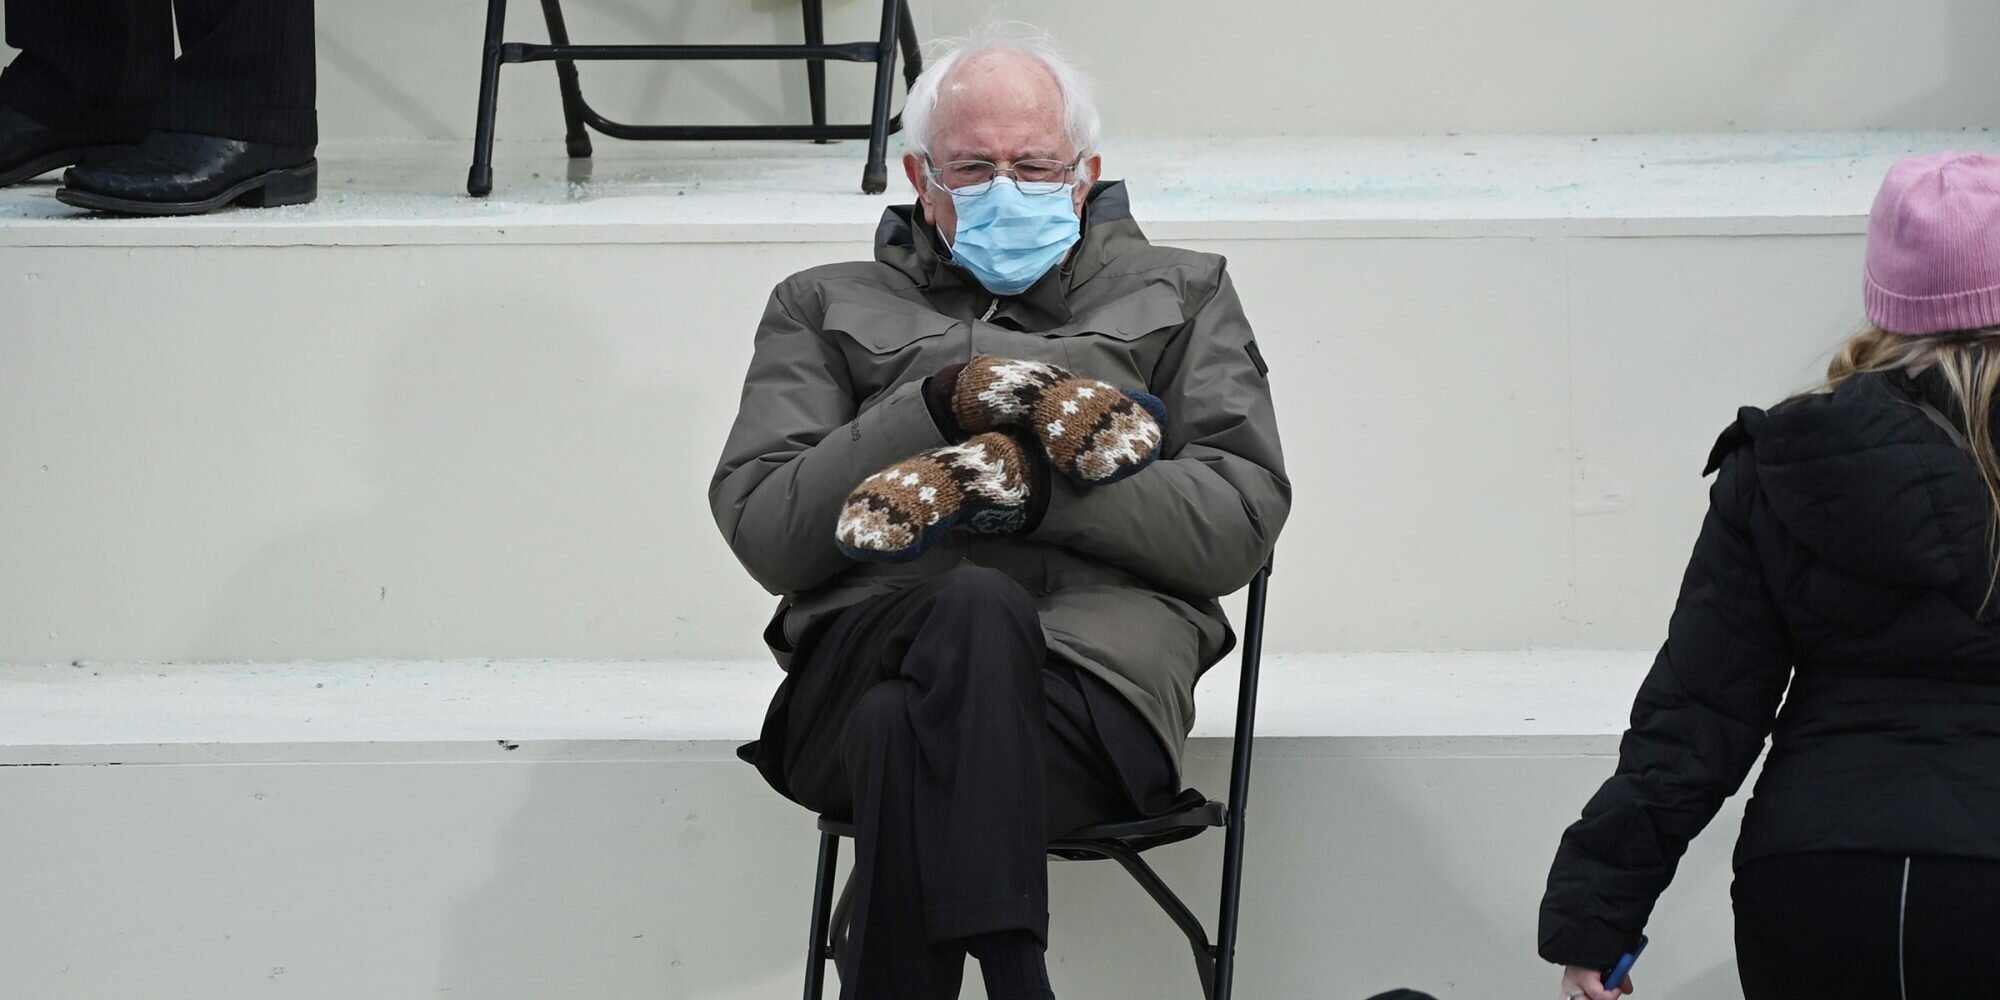 Bernie Sanders reacts to the viral inauguration memes: 'I was just sitting there trying to get warm'